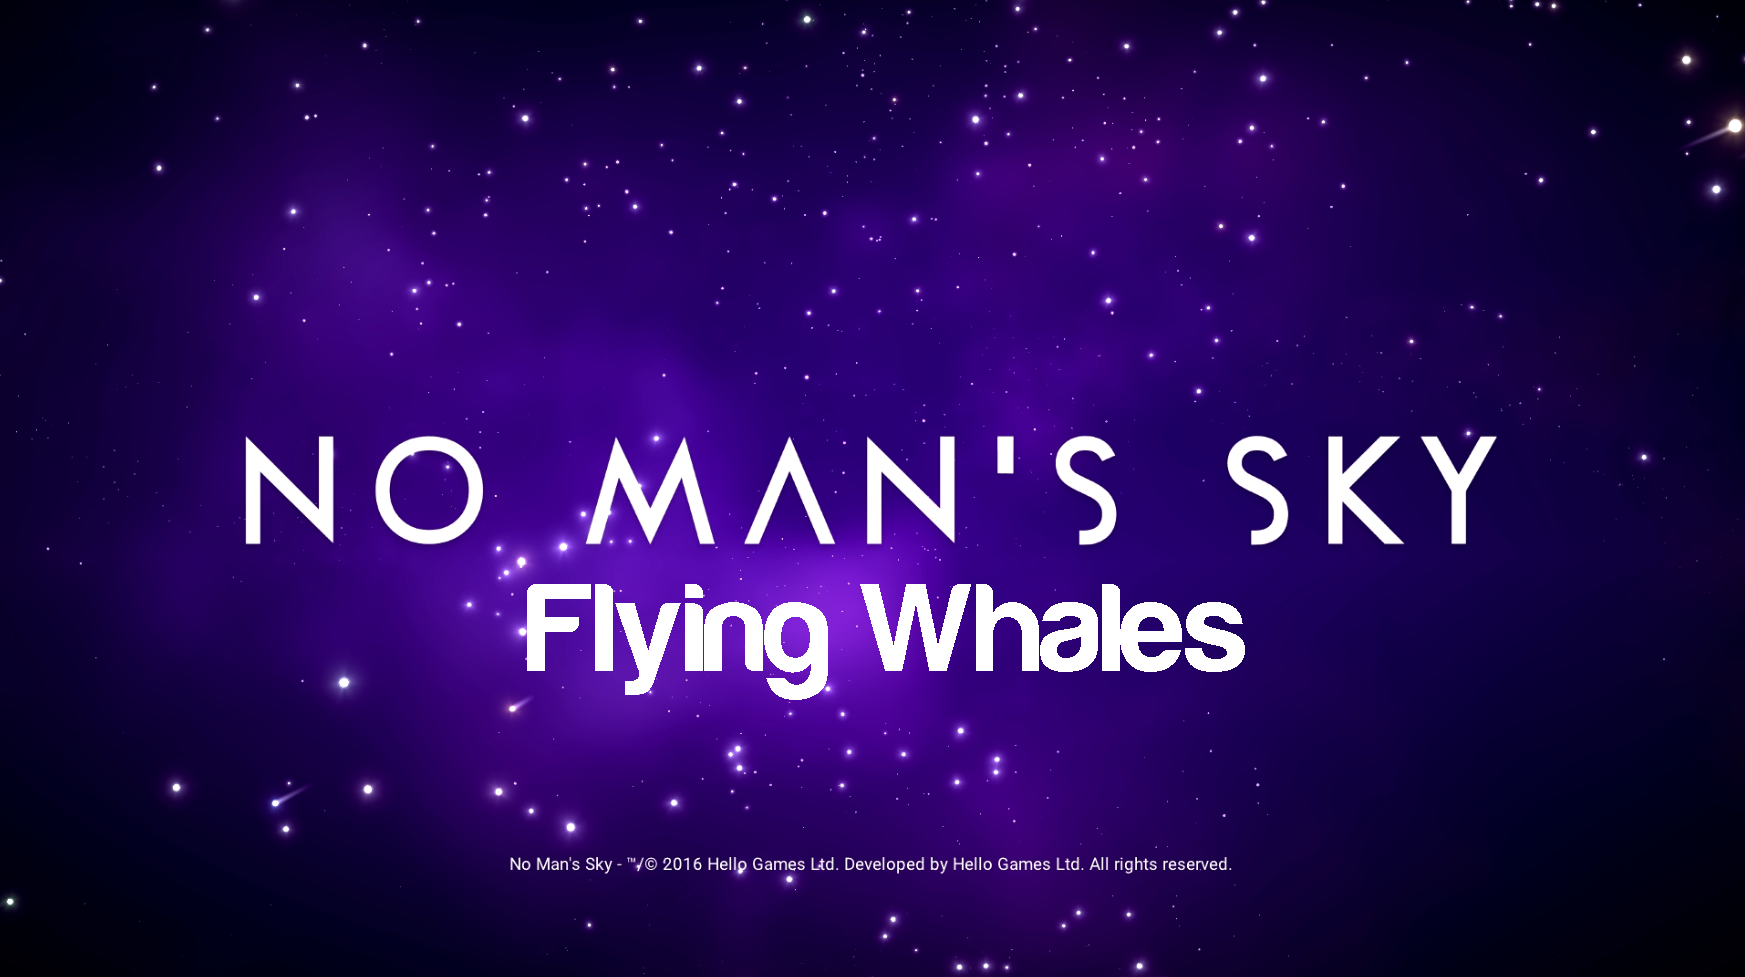 Flying Whales as Loading screen music